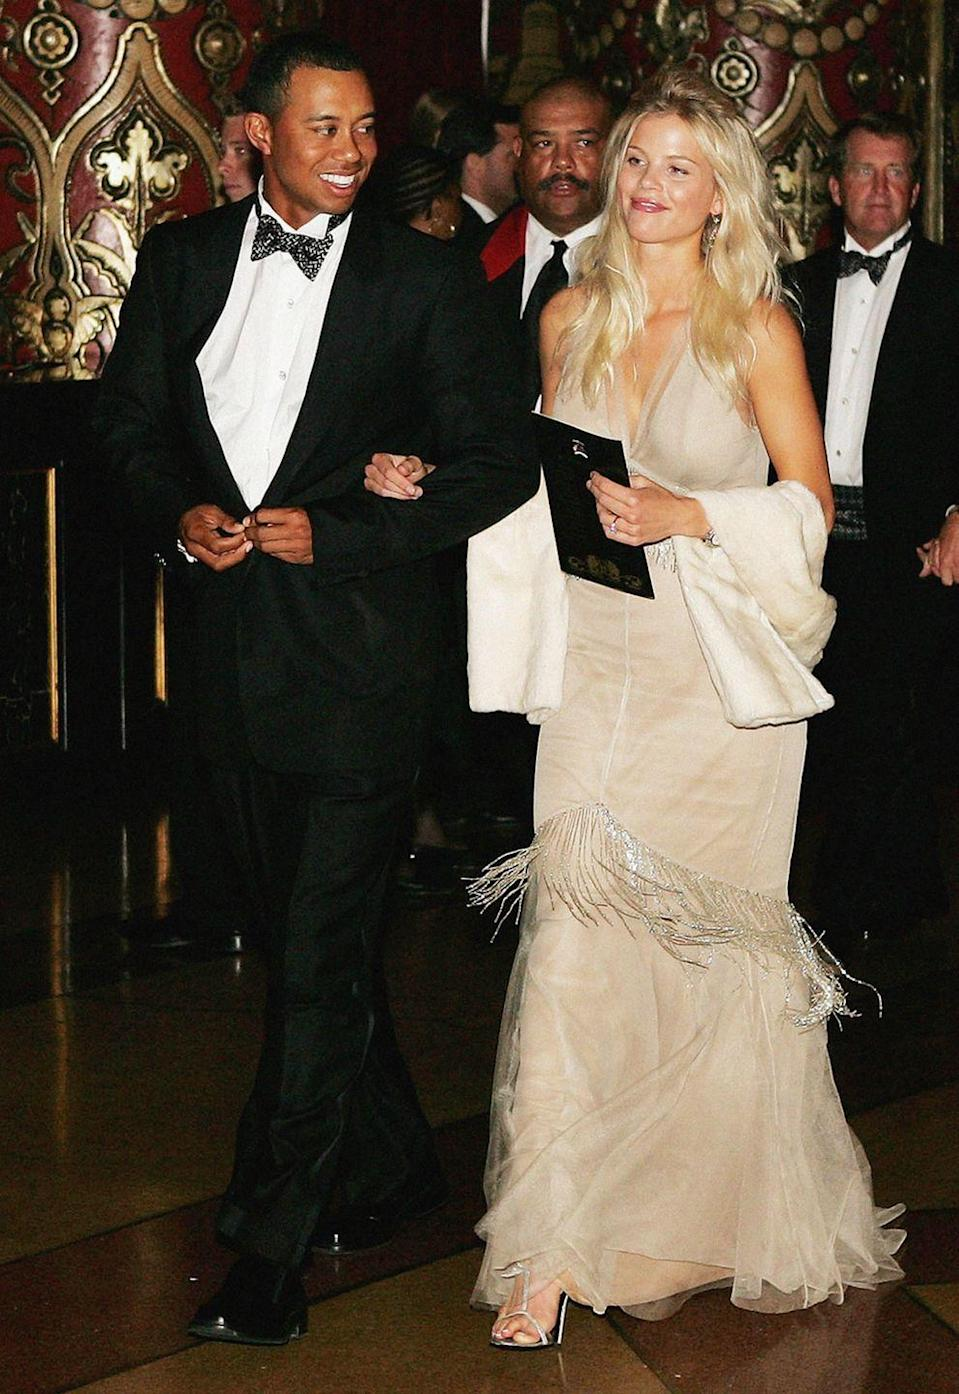 "<p>Things were already going downhill in Woods' marriage with Elin Nordegren when—shortly after he crashed their car in 2009—reports of Woods' <a href=""https://www.thehollywoodgossip.com/2009/12/the-women-of-tiger-woods-full-list--pictures/"" rel=""nofollow noopener"" target=""_blank"" data-ylk=""slk:affairs with multiple women"" class=""link rapid-noclick-resp"">affairs with multiple women</a> came out. Allegedly, he had 13 different partners.</p>"